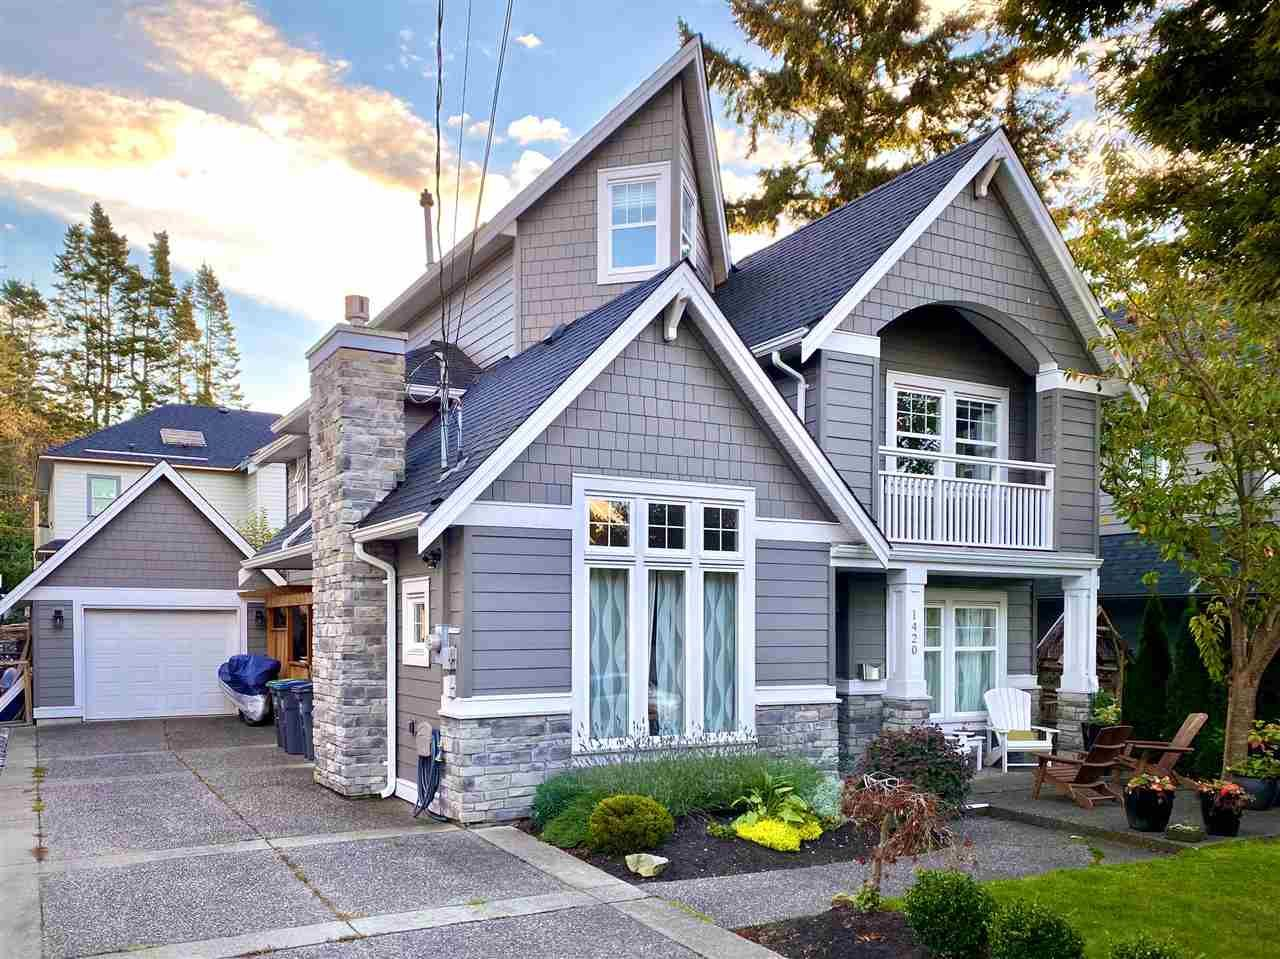 Main Photo: 1420 129B STREET in Surrey: White Rock House for sale (South Surrey White Rock)  : MLS®# R2510375